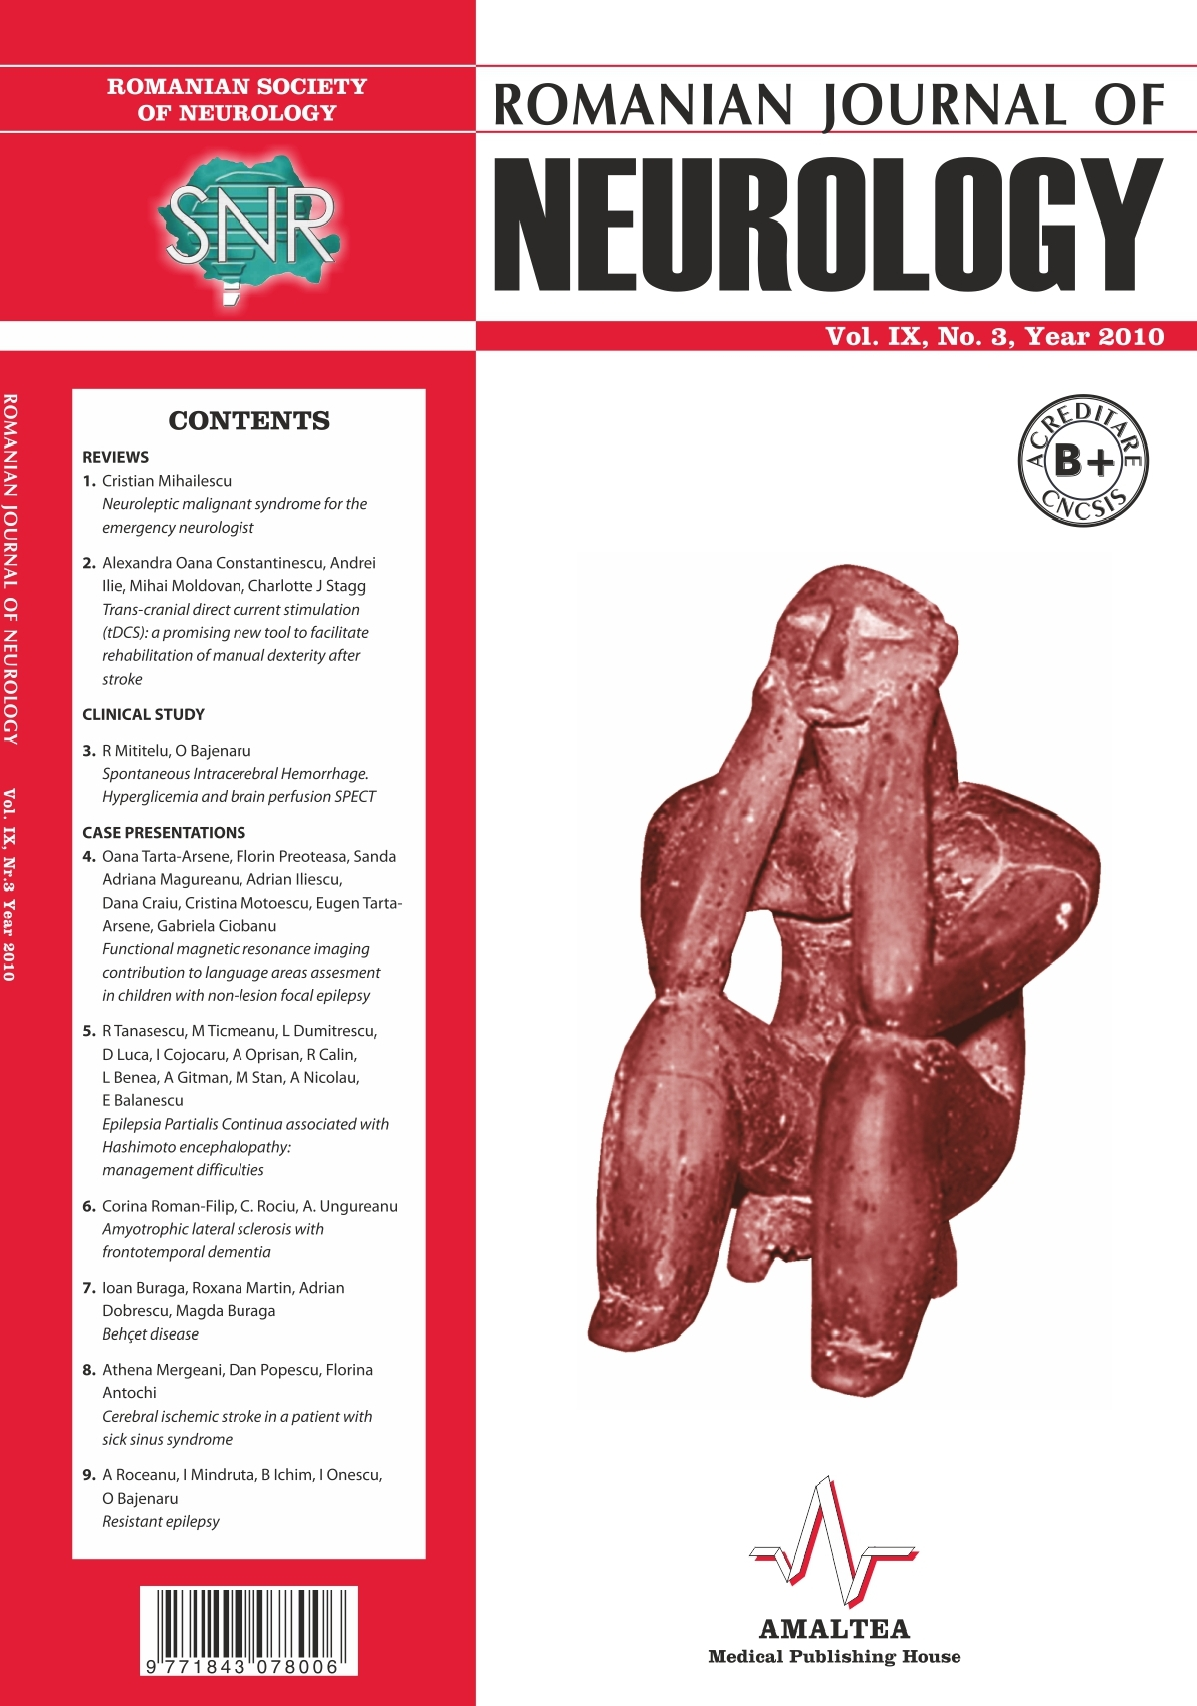 Romanian Journal of Neurology, Volume IX, No. 3, 2010